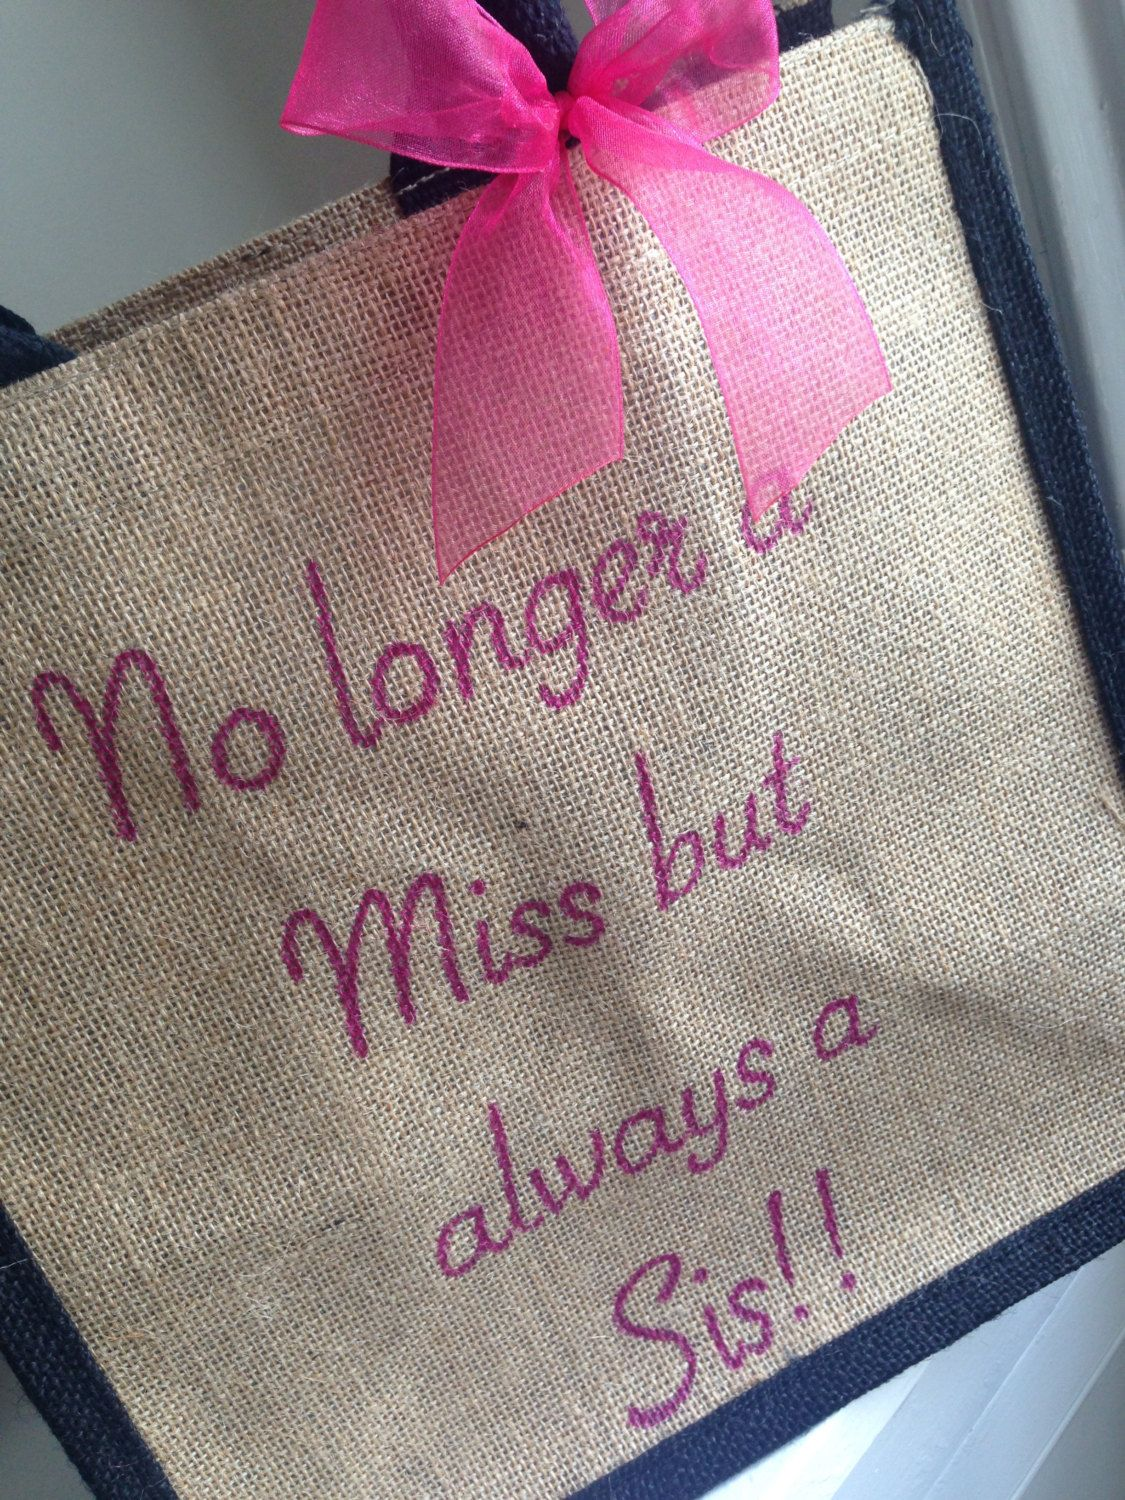 Wedding Day Tote Bag for Sister 'No longer a Miss but